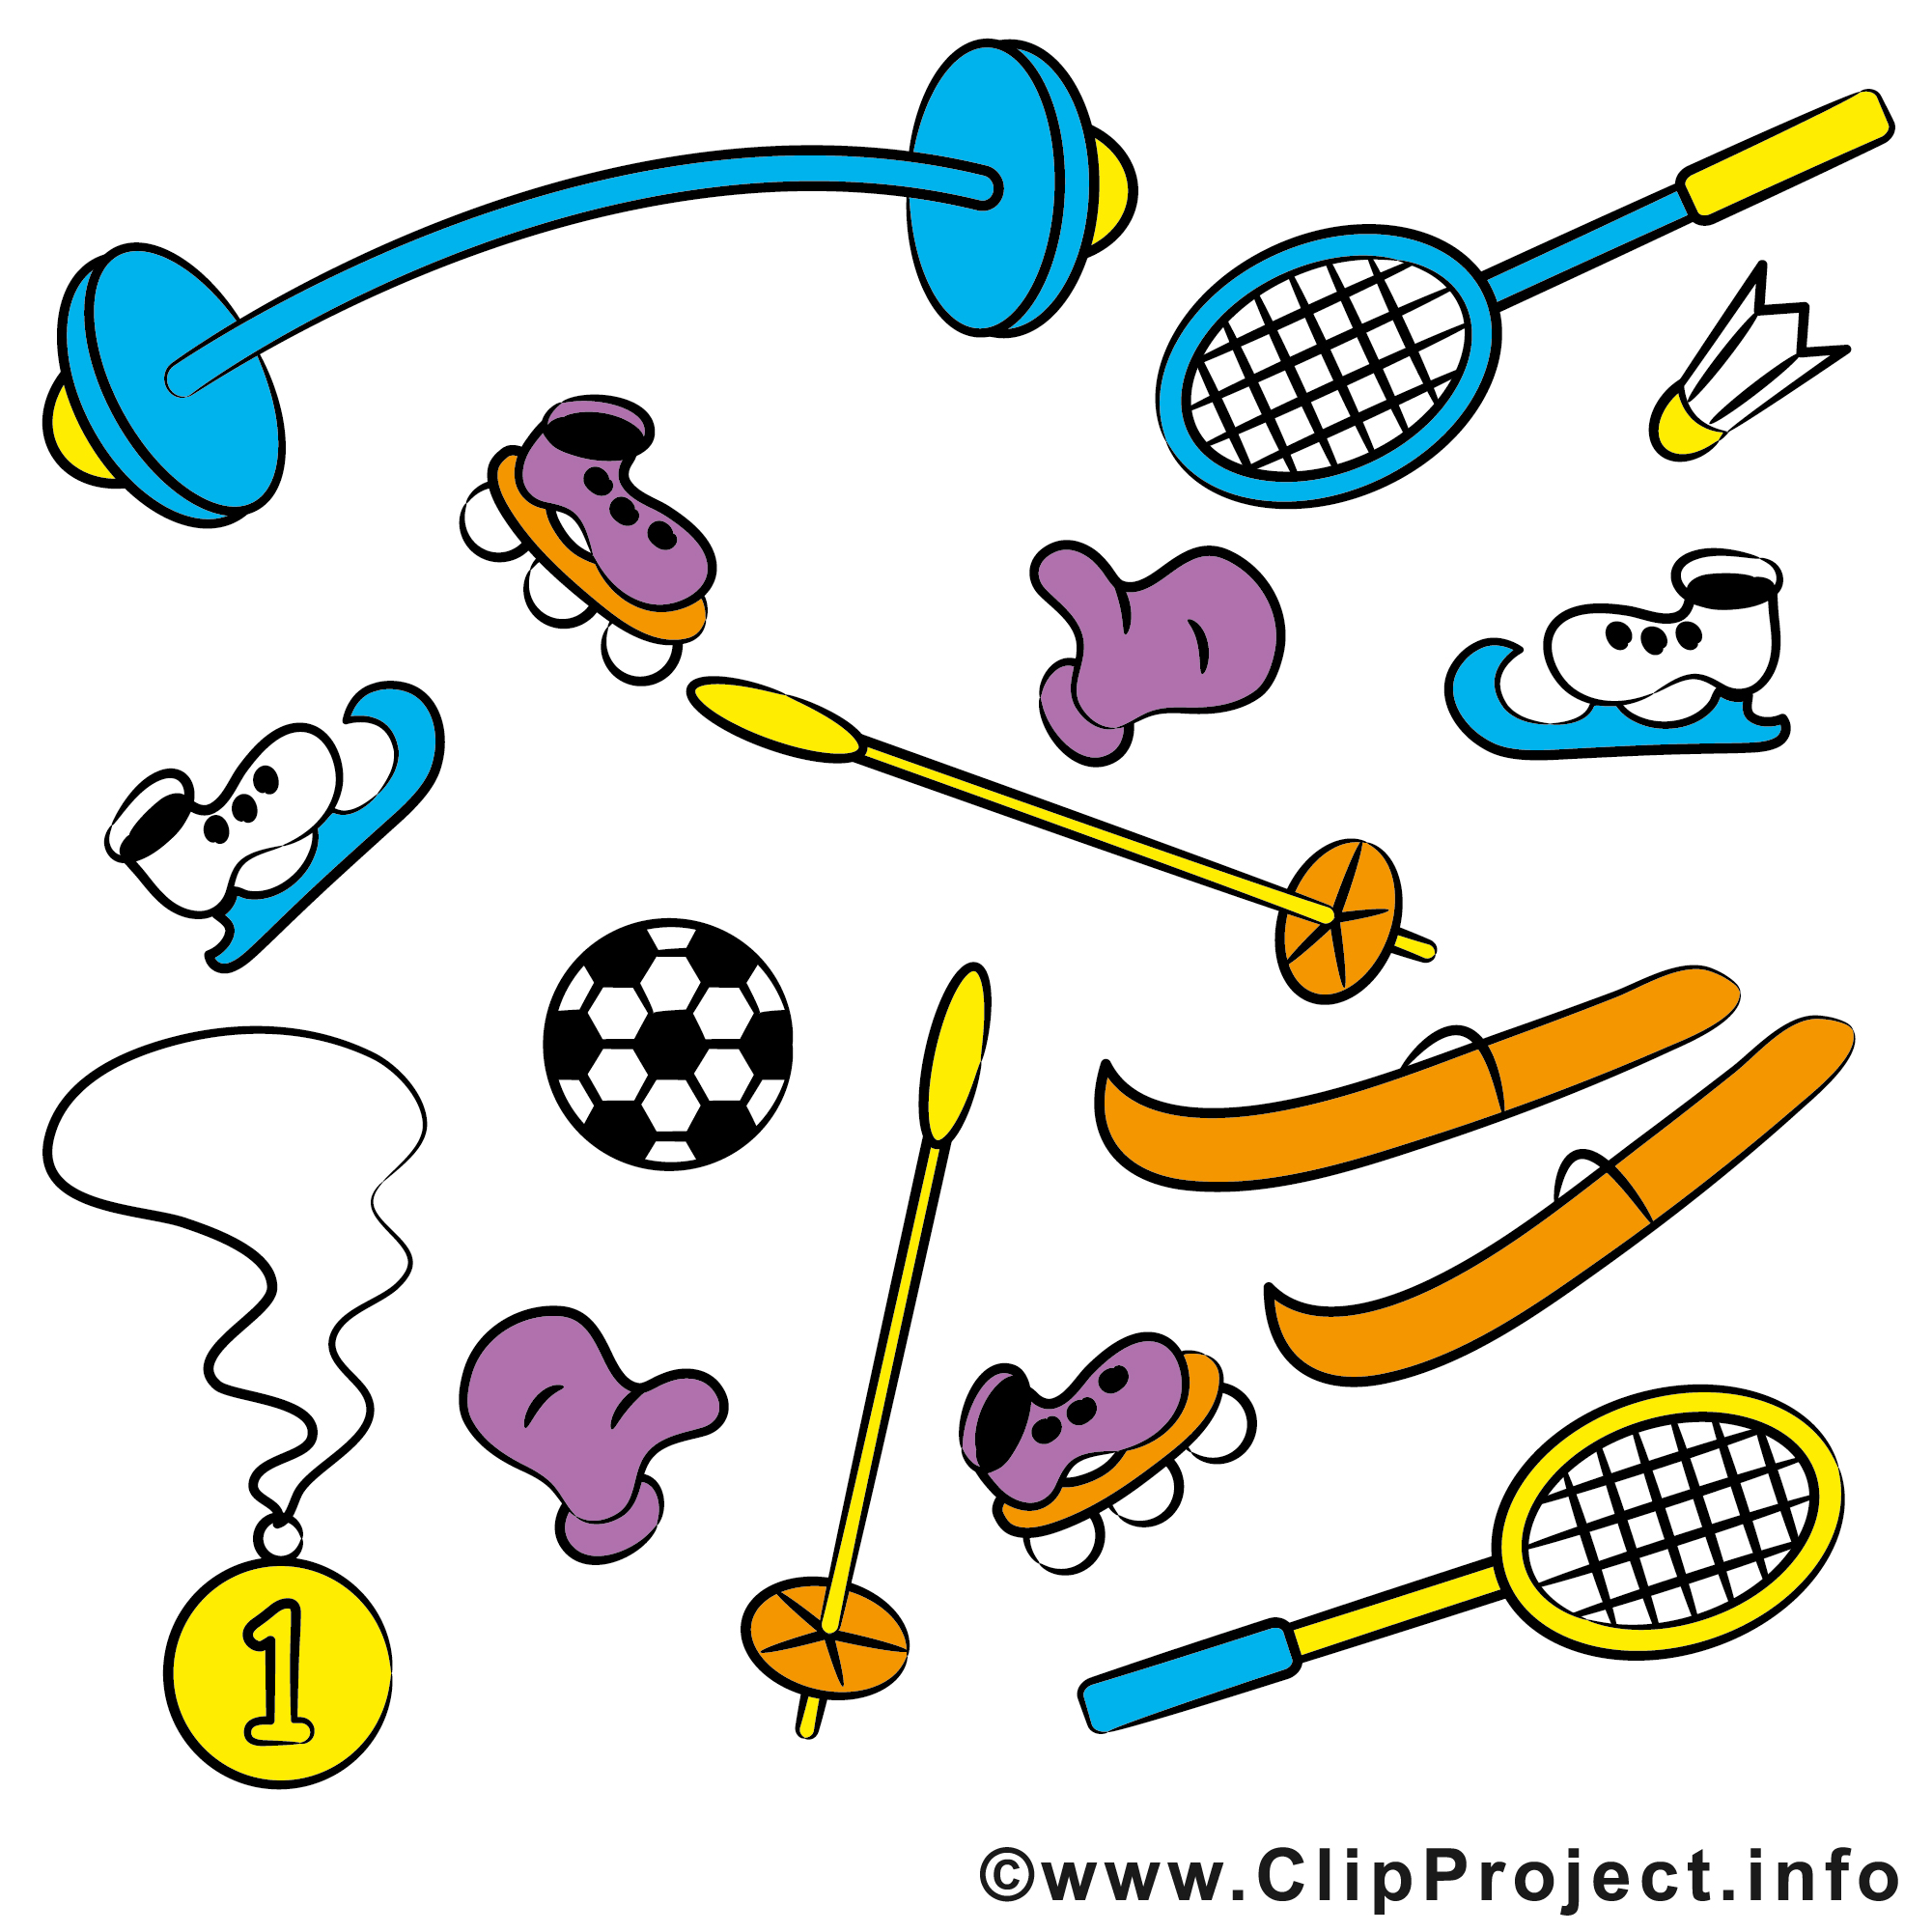 free sports graphics clipart - photo #14